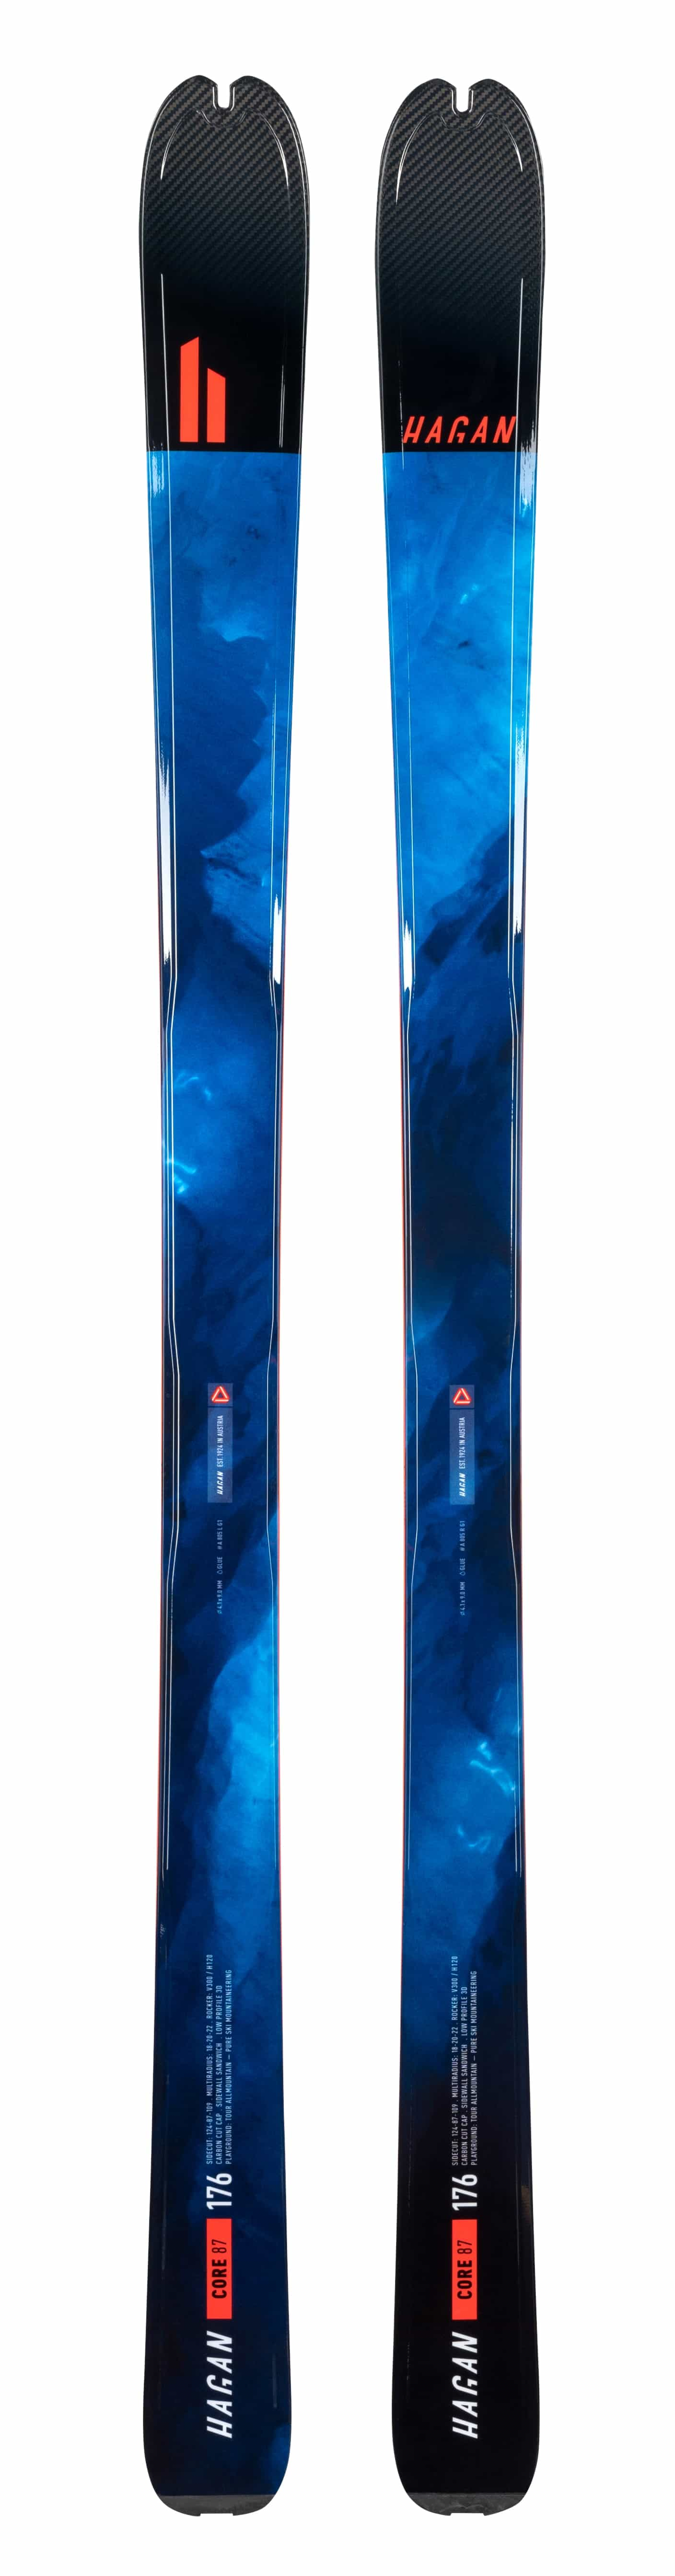 Core 87, Skis - Hagan Ski Mountaineering